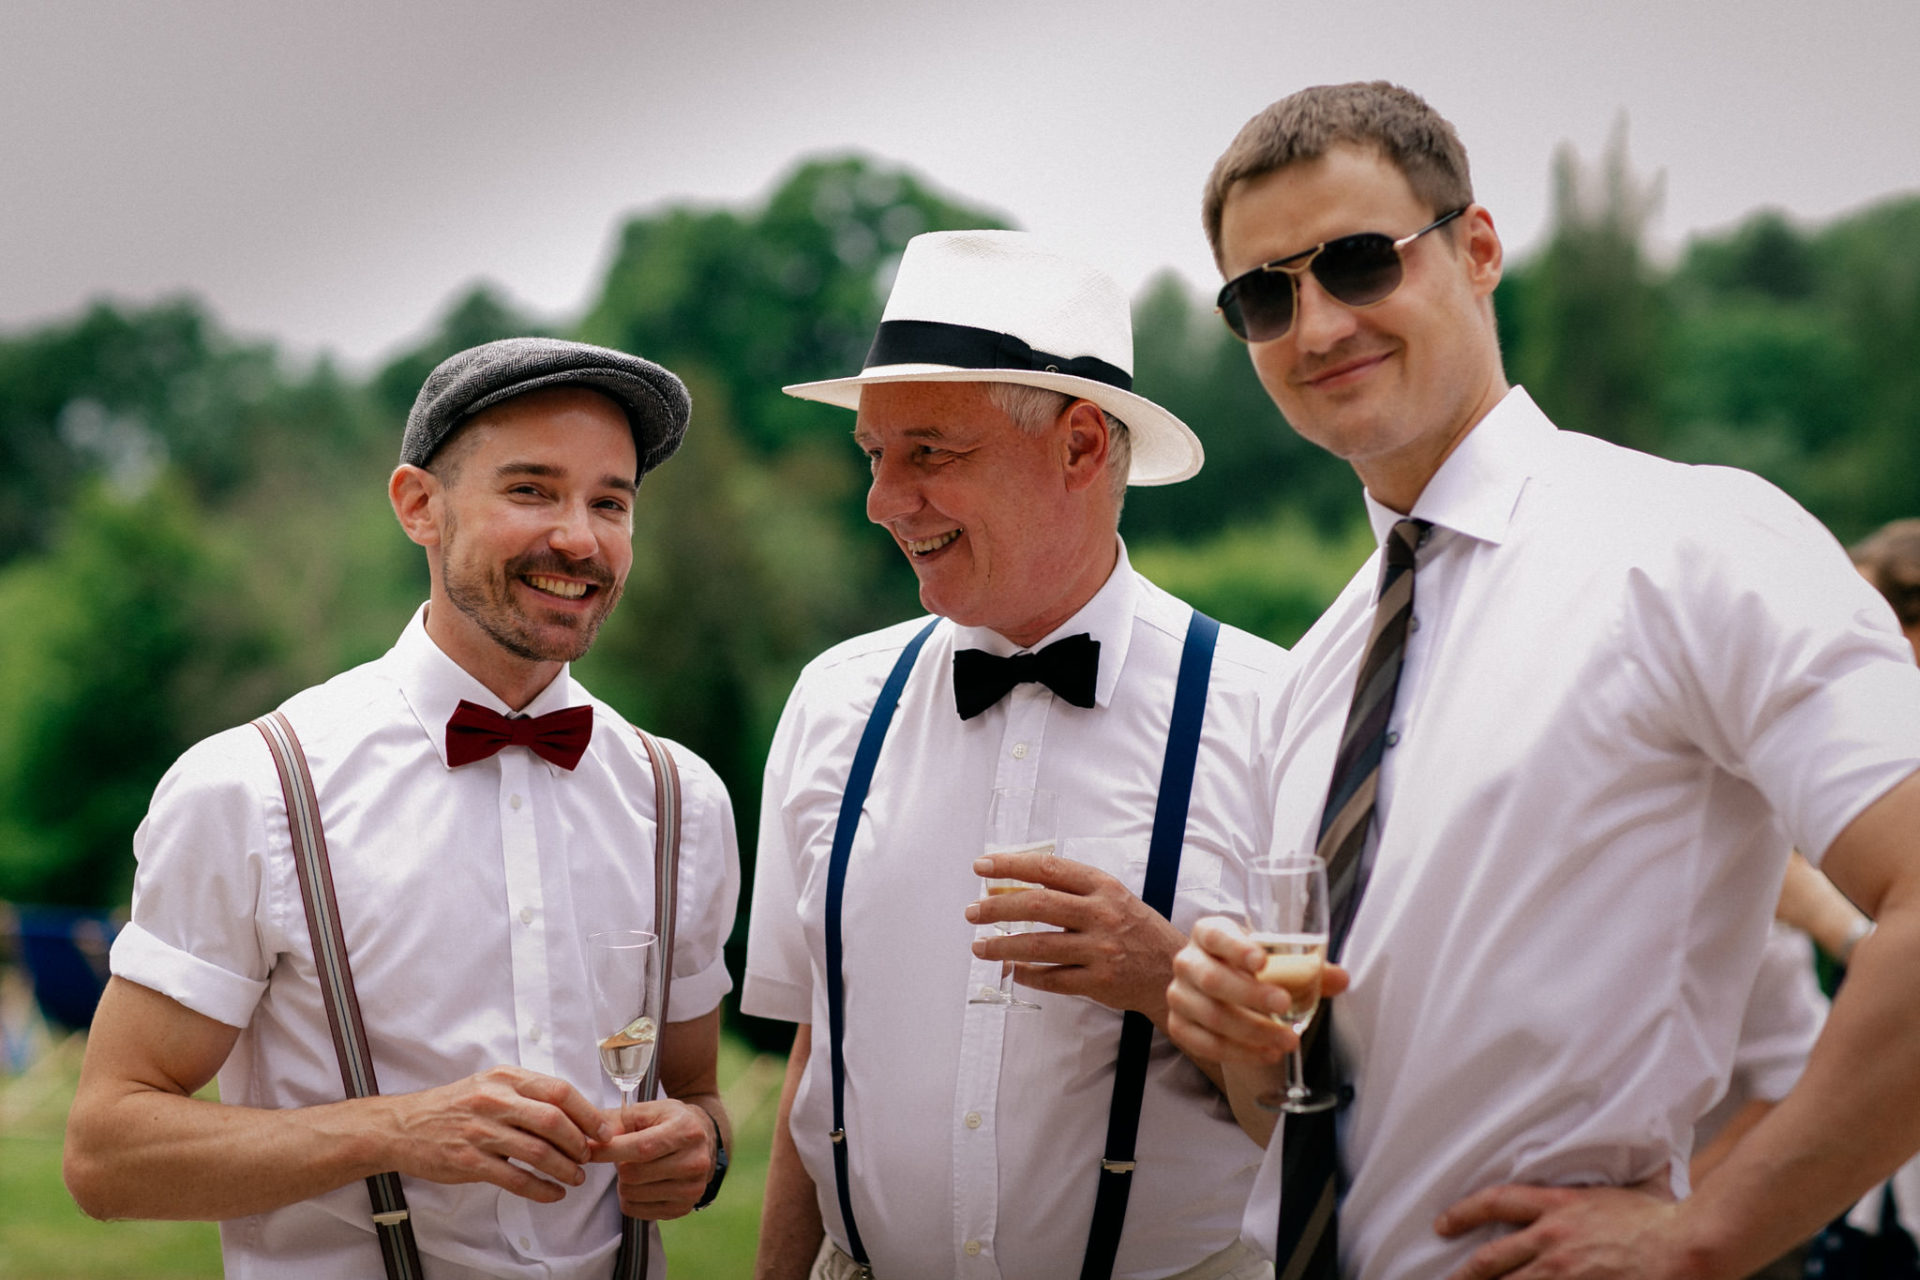 Stylish Gay Wedding in a Castle in Northern Germany